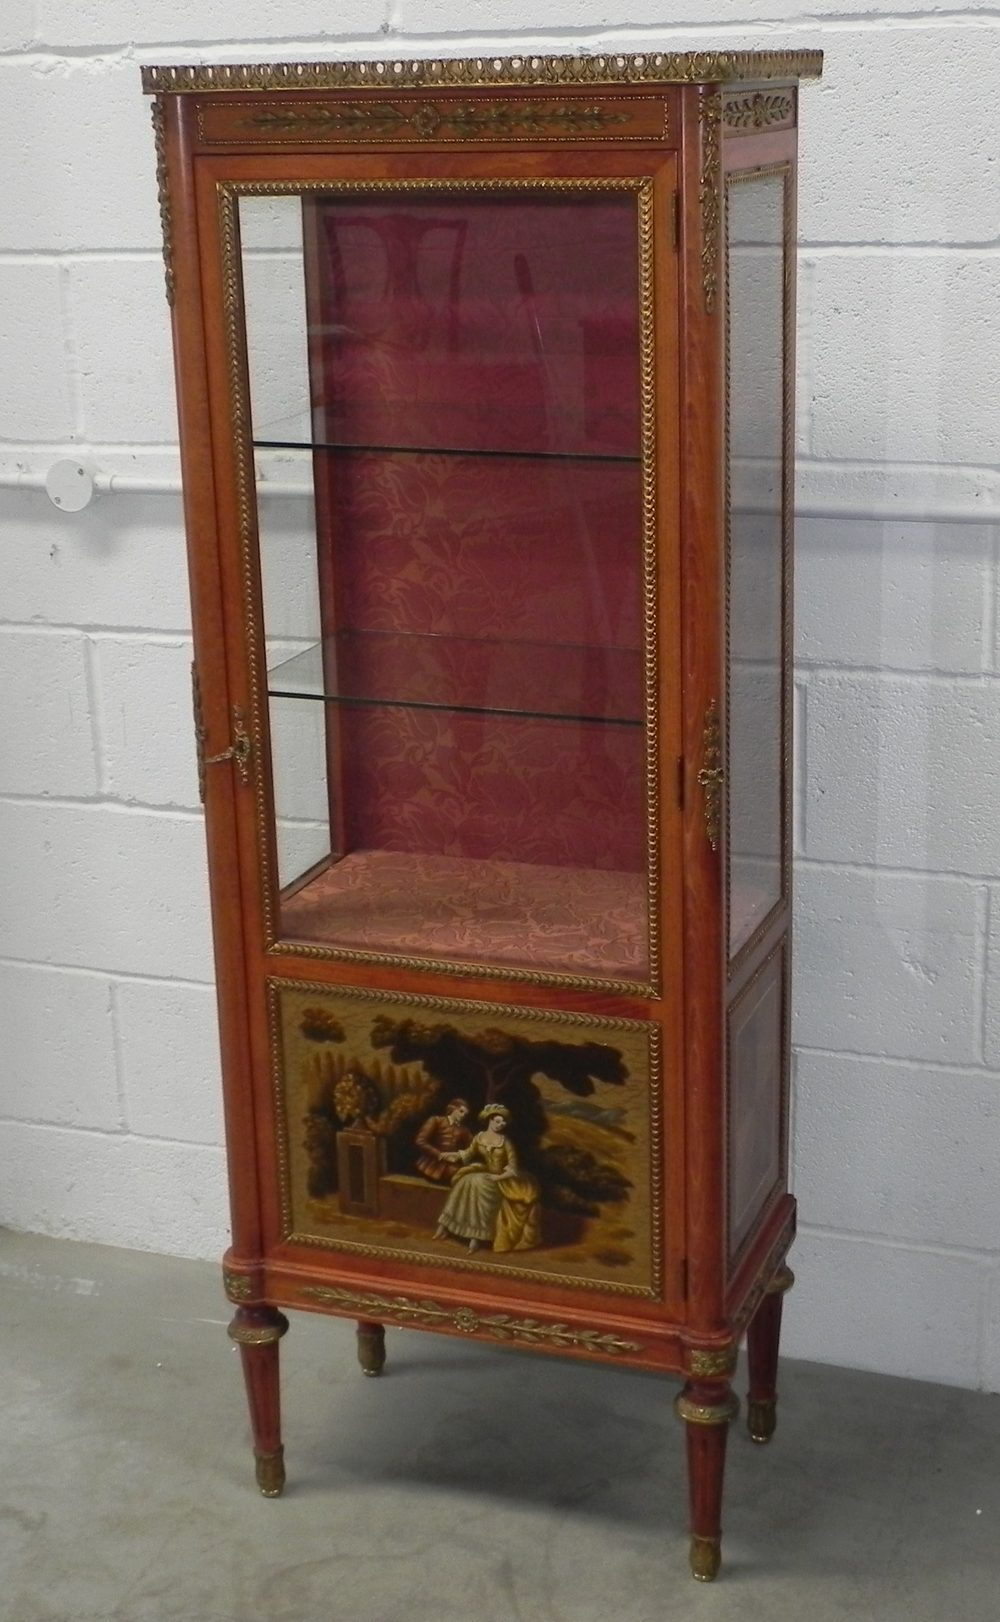 Louis xvi vitrine display cabinet vernis martin for Sideboard vitrine